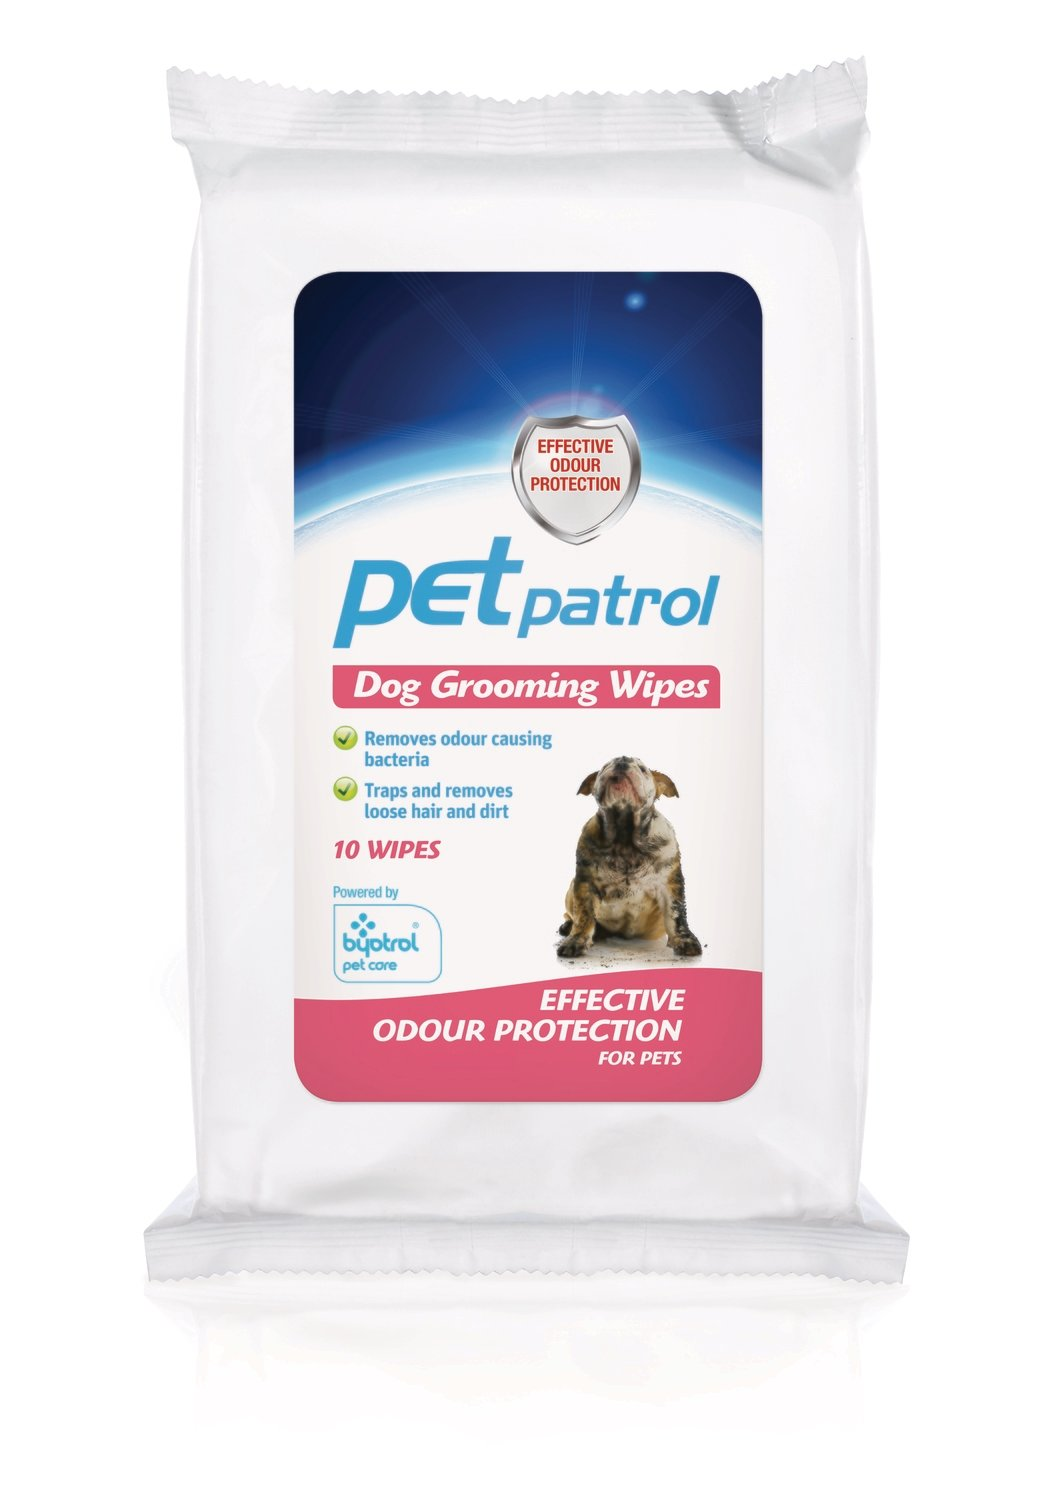 Pet Patrol Dog Grooming Wipes 10's